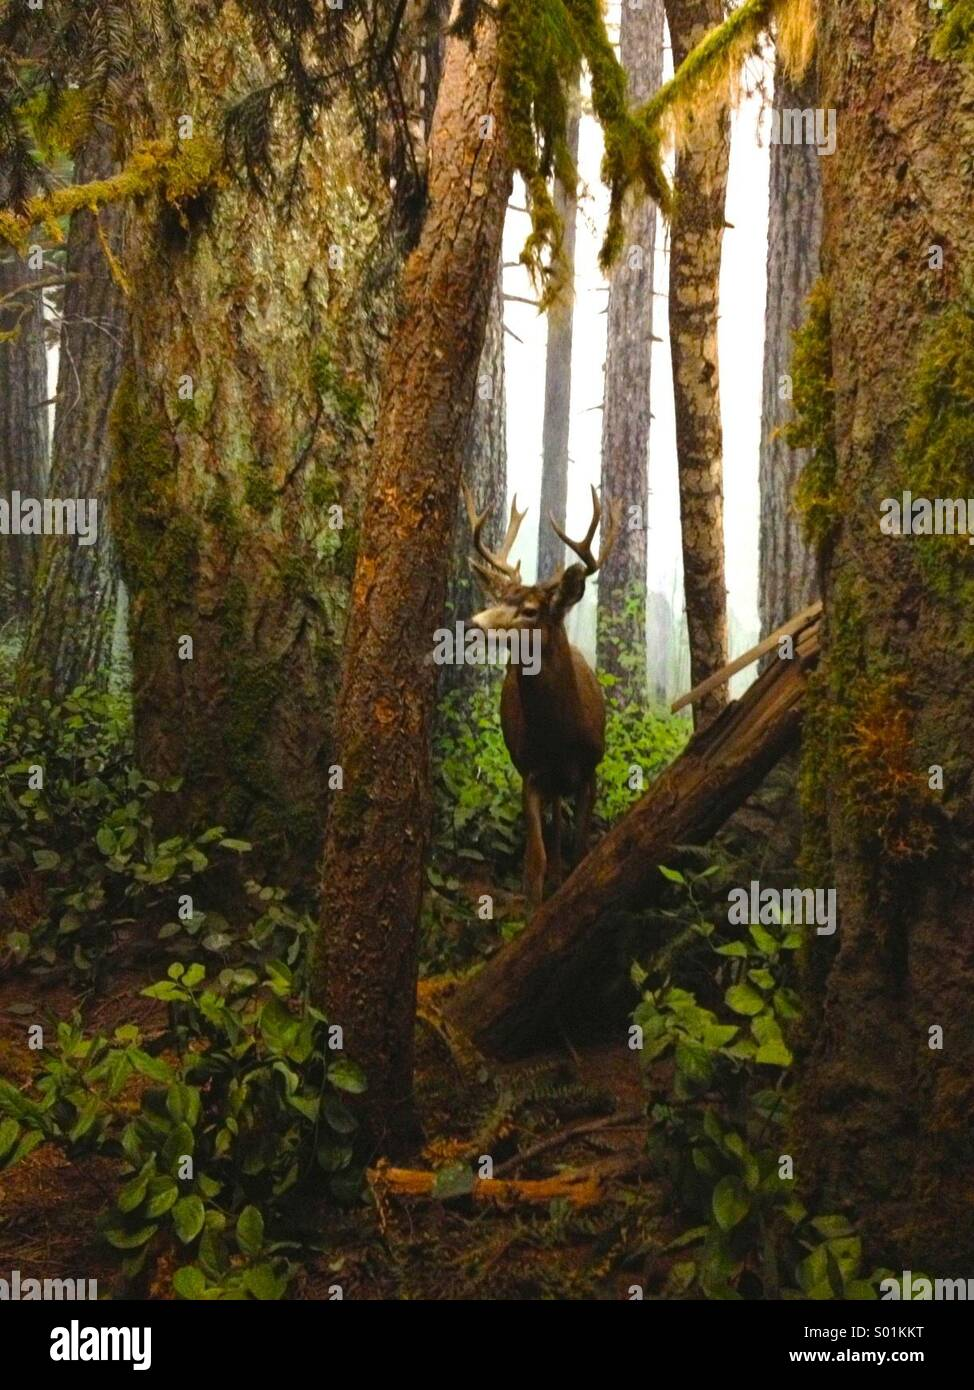 Deer in the woods - Stock Image